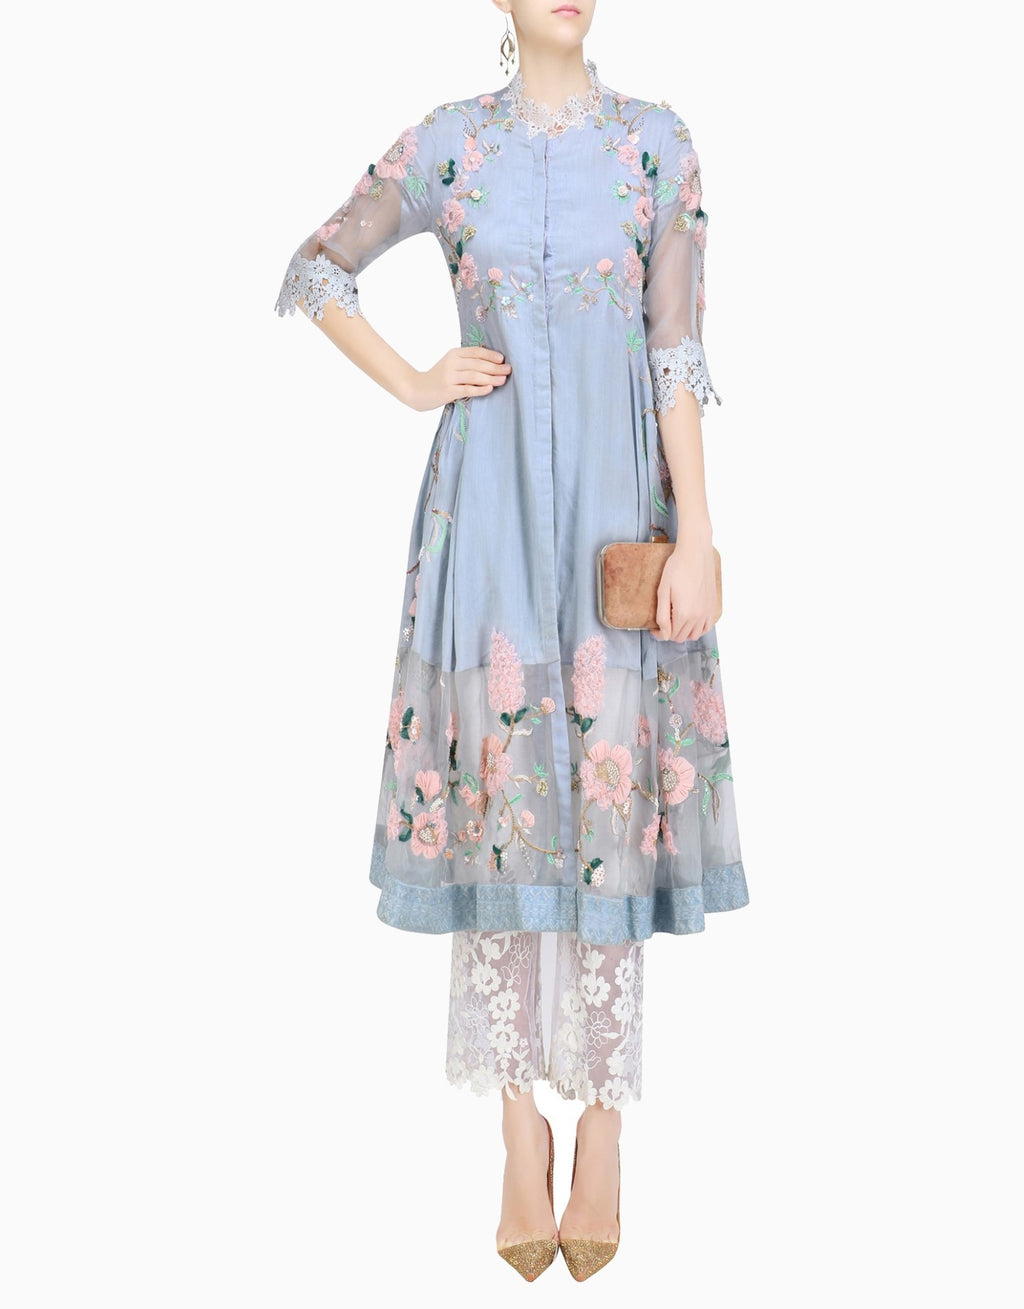 Abhishek Vermaa - Cherry Blossom Tunic And Pants - INDIASPOPUP.COM